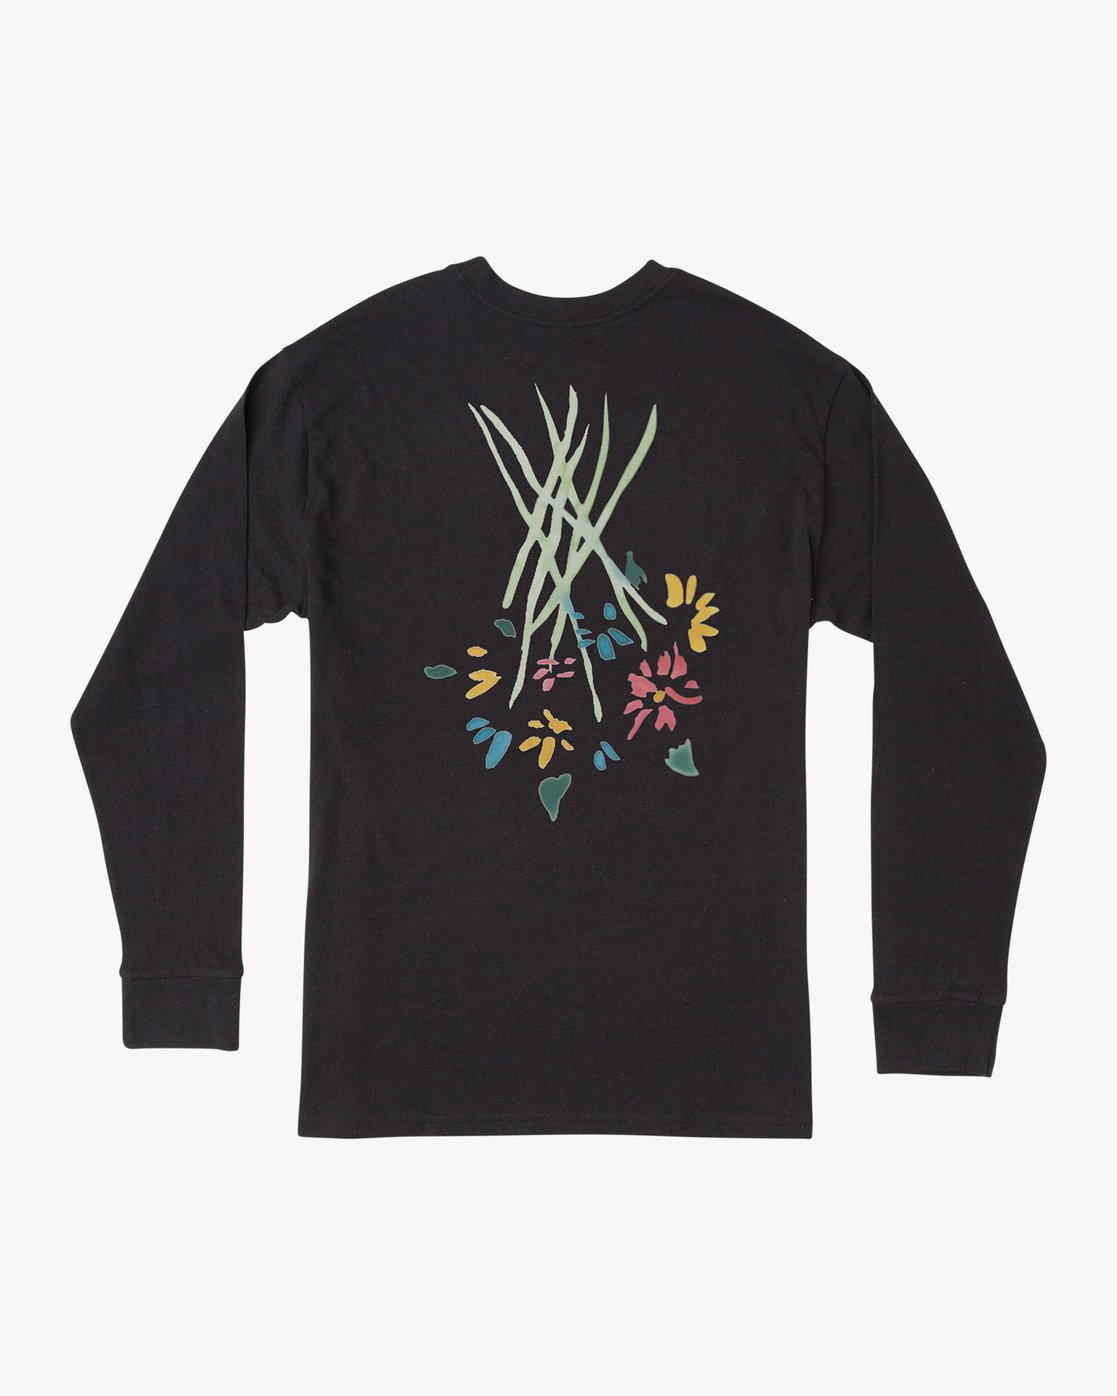 0 AR Lottie Flower Long Sleeve T-Shirt Black M492URLF RVCA